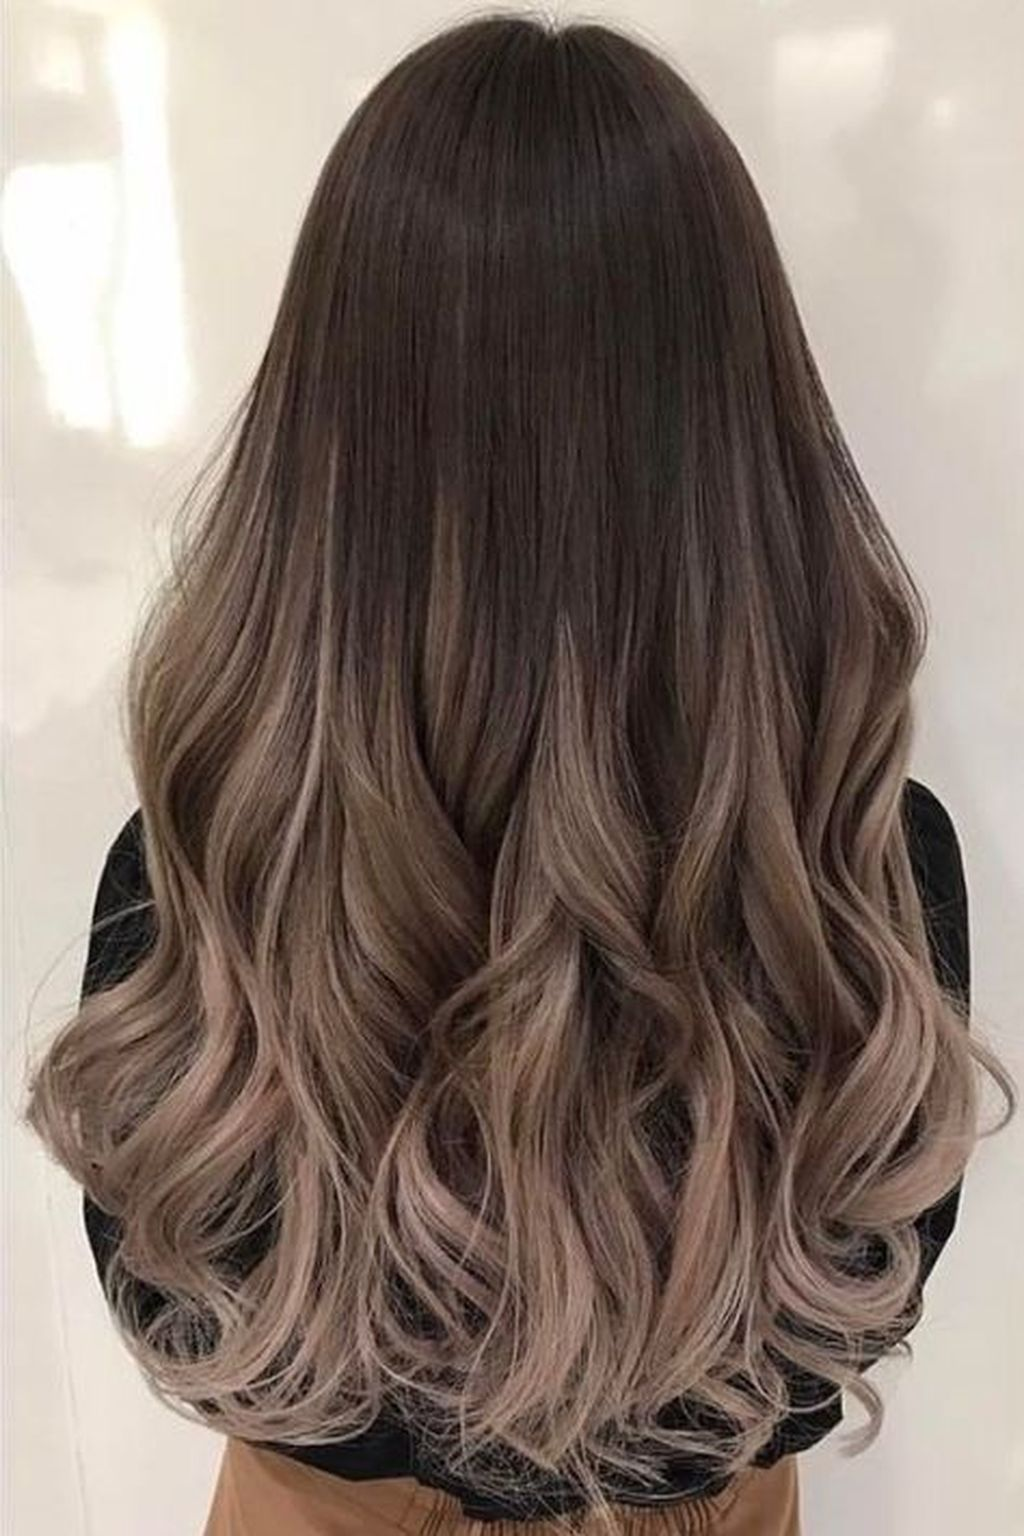 49 Classy Hair Color Ideas To Try In 2019 Hair Styles Cool Hair Color Hair Color Balayage